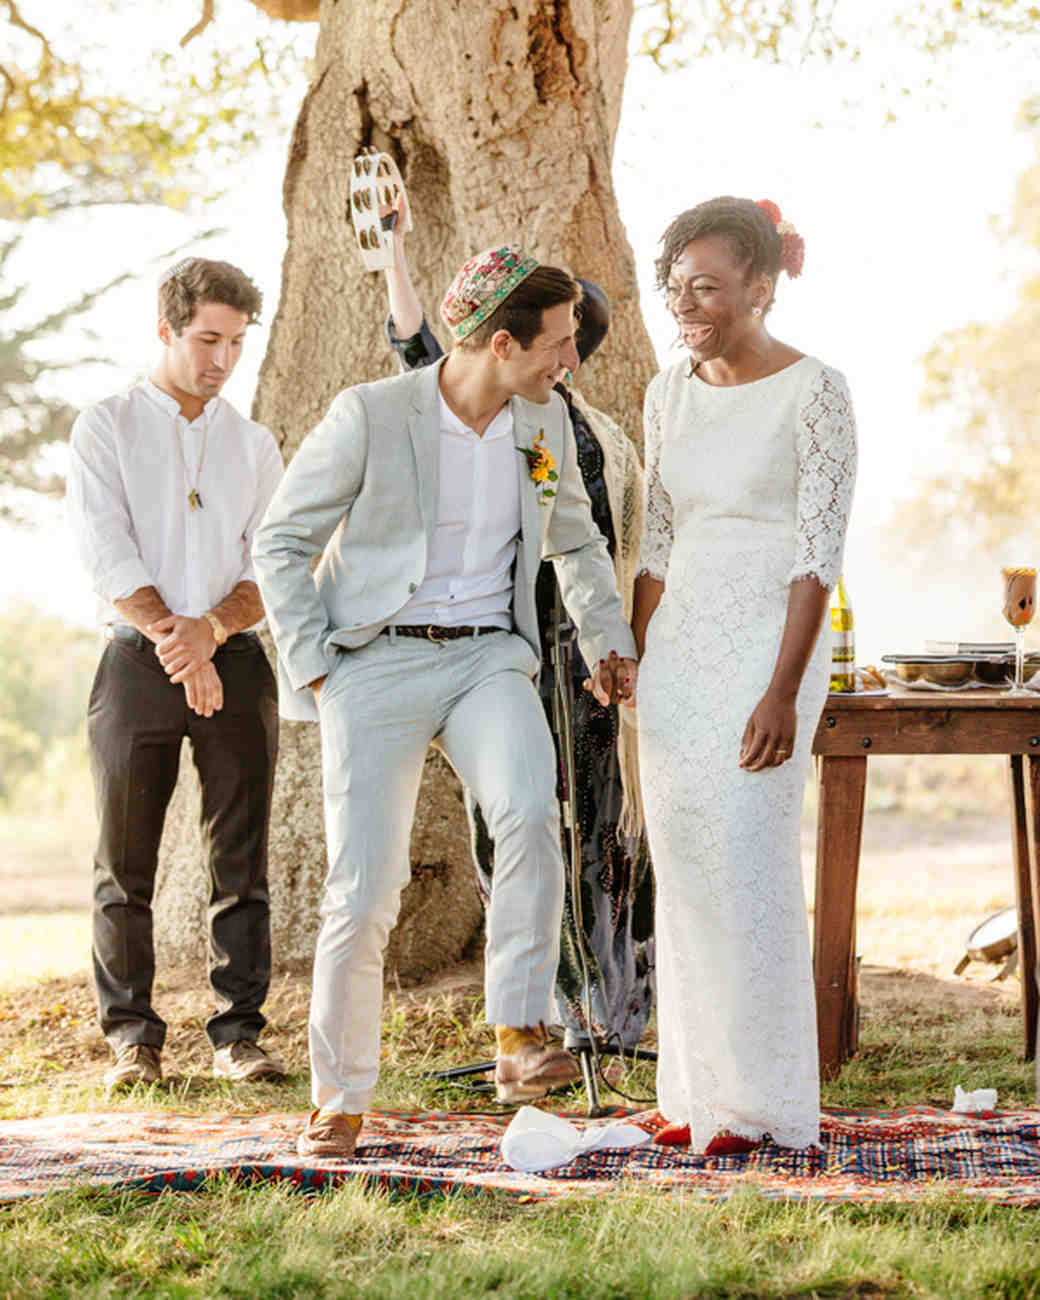 9 Things To Know About Writing Your Wedding Vows